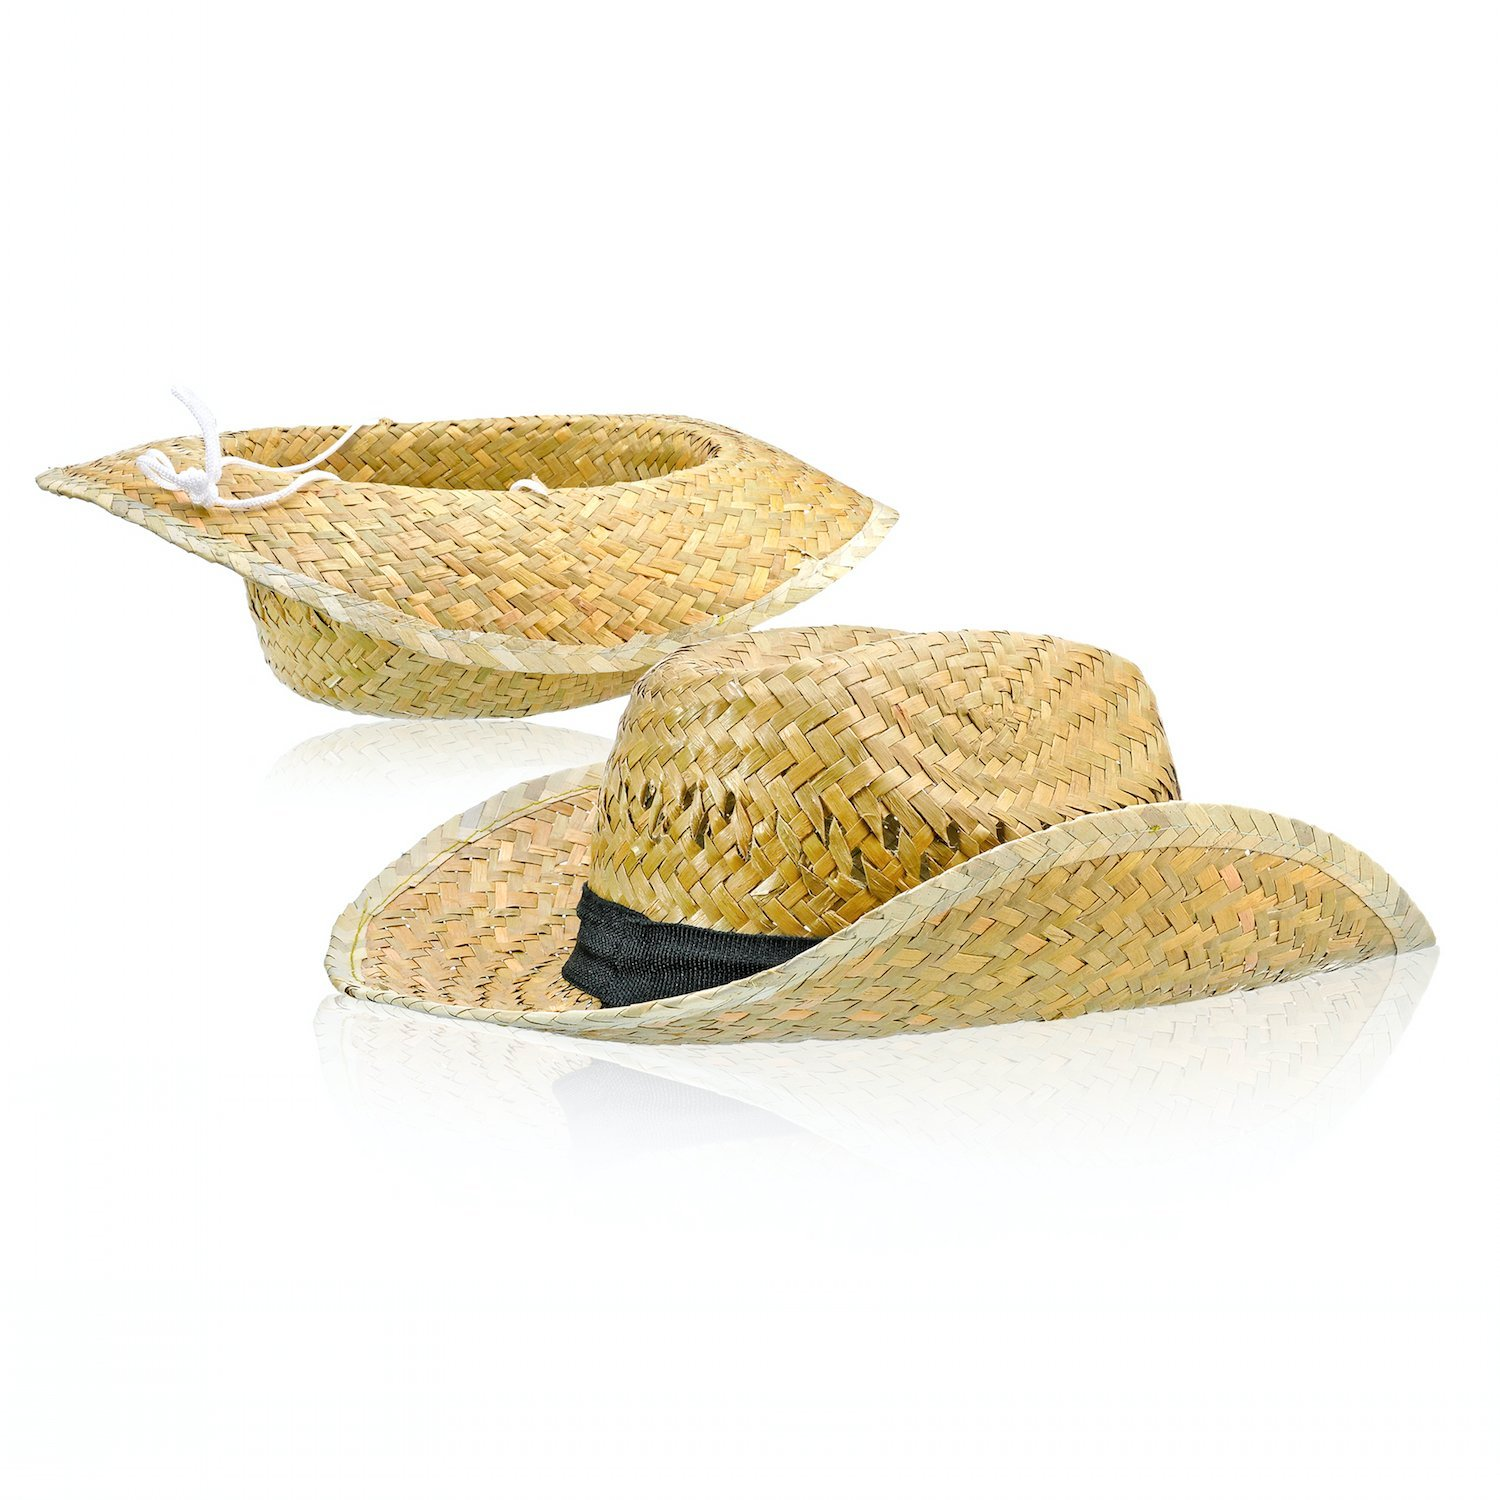 Bottles N Bags 2 pack ! Woven Straw Cowboy Hat with Fabric Band and Adjustable Chinstrap, Perfect Cruise Accessory by